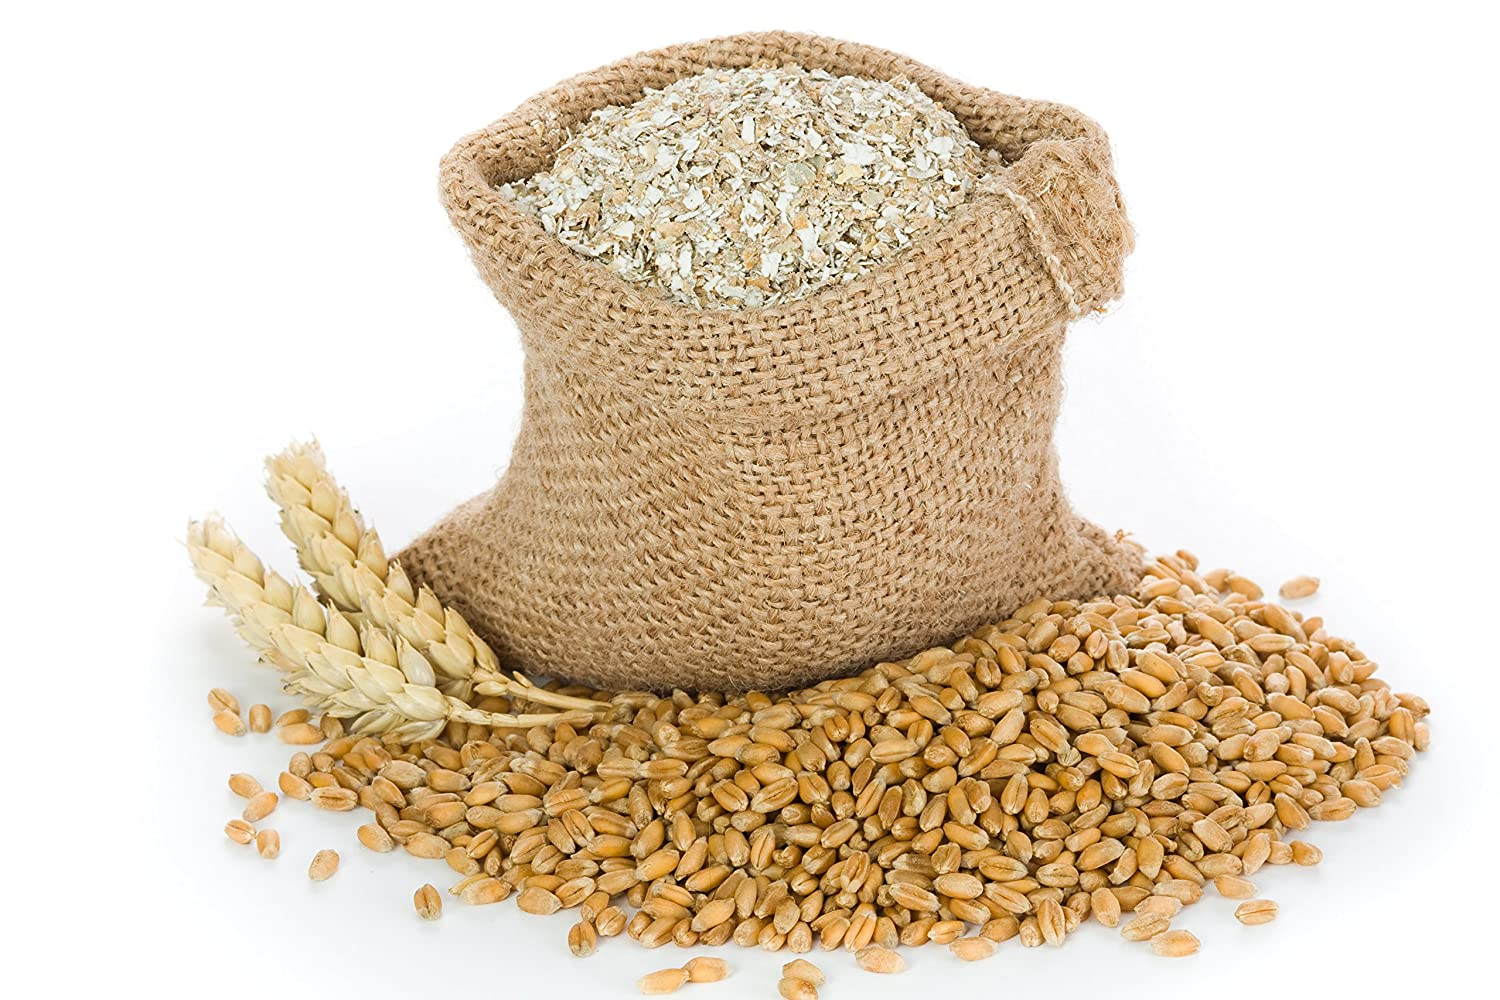 5LB Wheat Bran Bedding, Food for Mealworms and Superworms